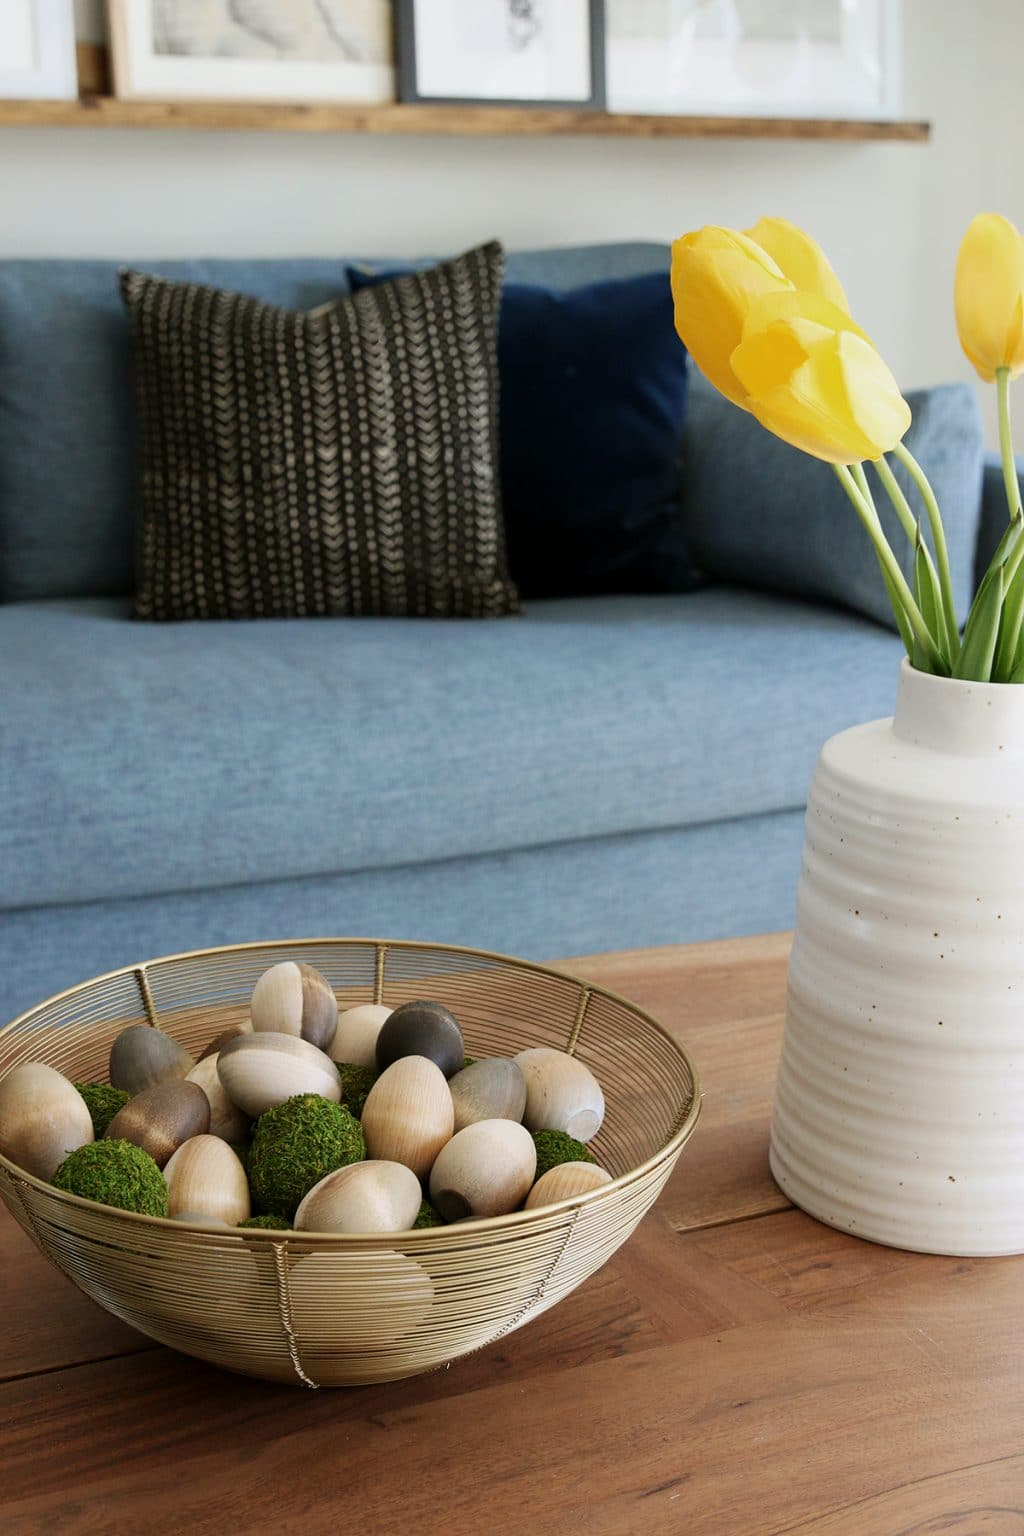 An Easy DIY Easter Project: Staining Wood Eggs! Wooden eggs in a gold bowl on a coffee table.